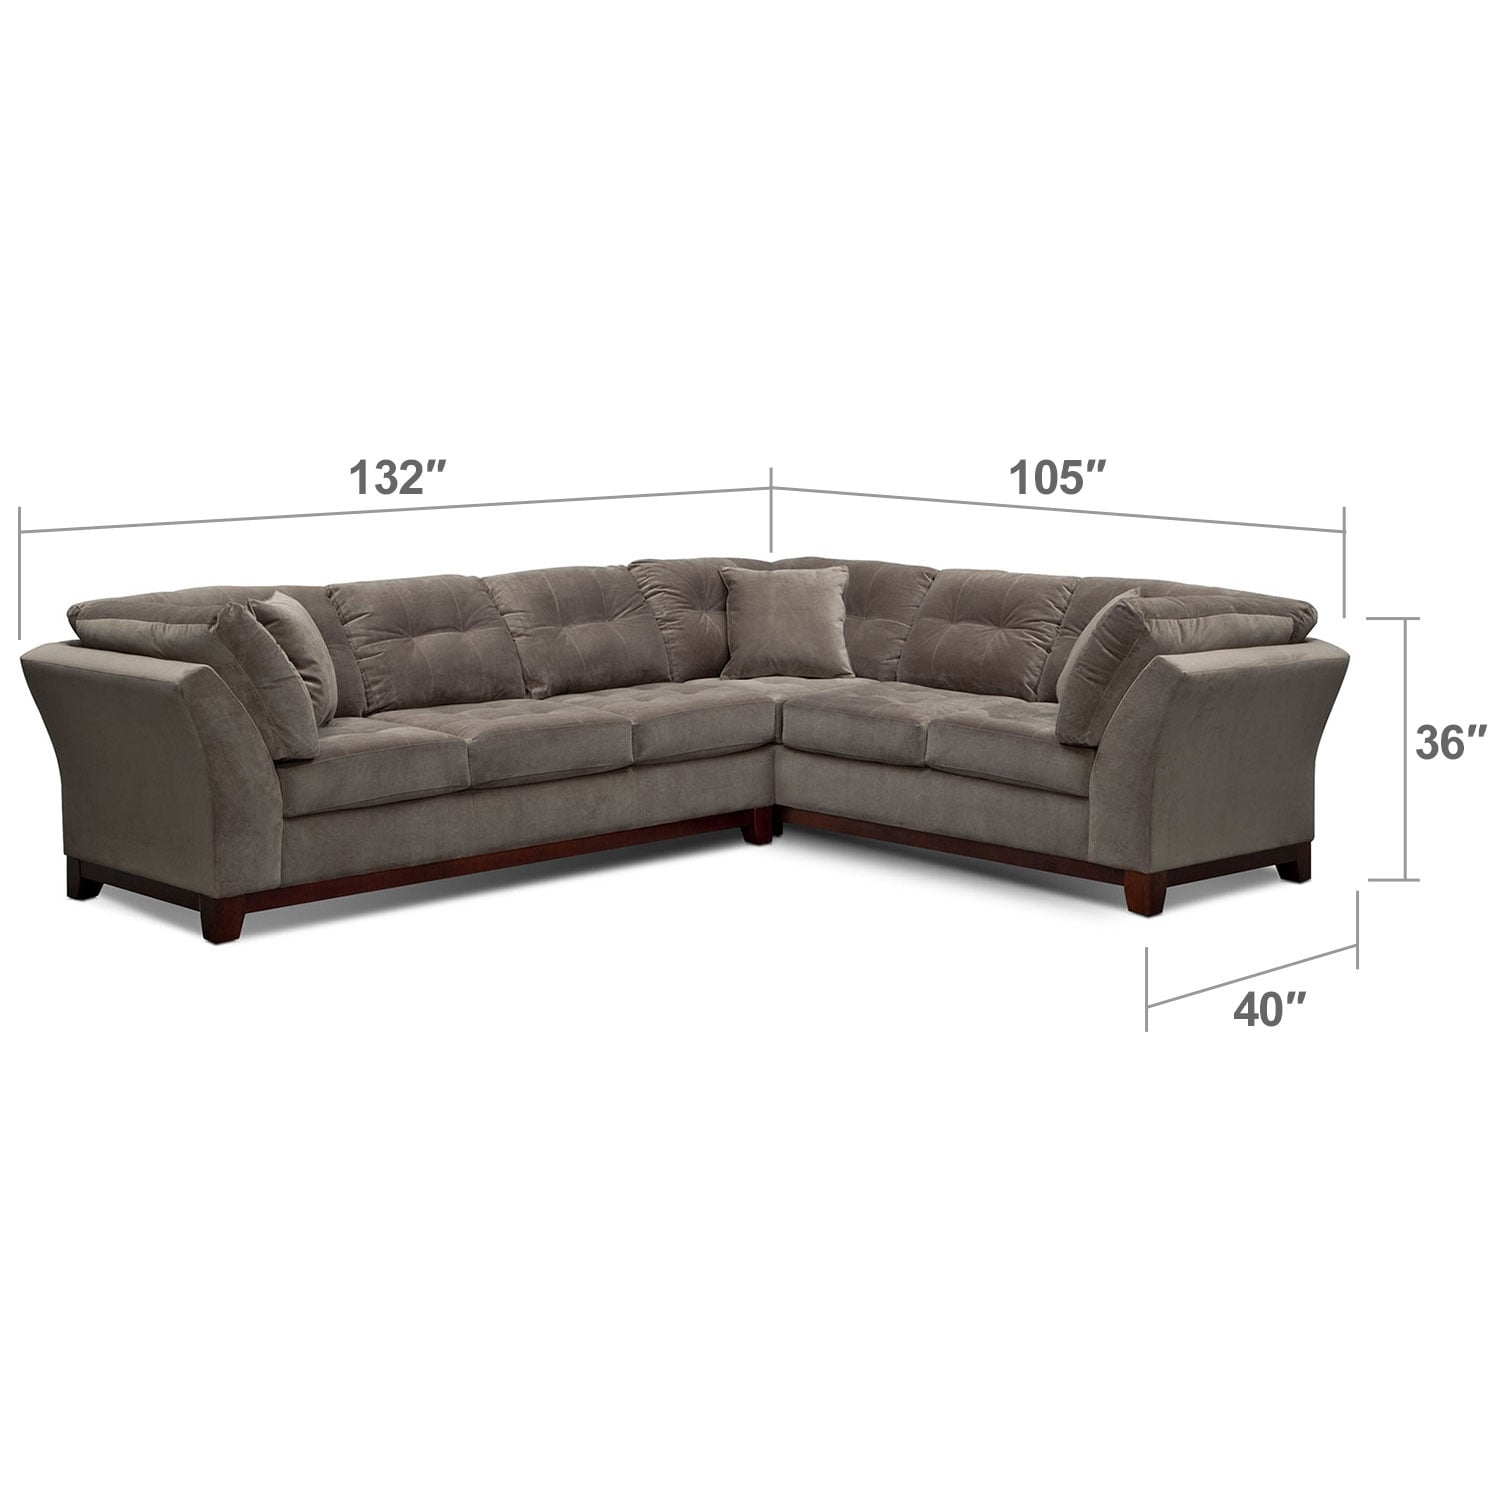 "Living Room Furniture - Solace 2-Piece Left-Facing 132"" Sofa Sectional - Gray"